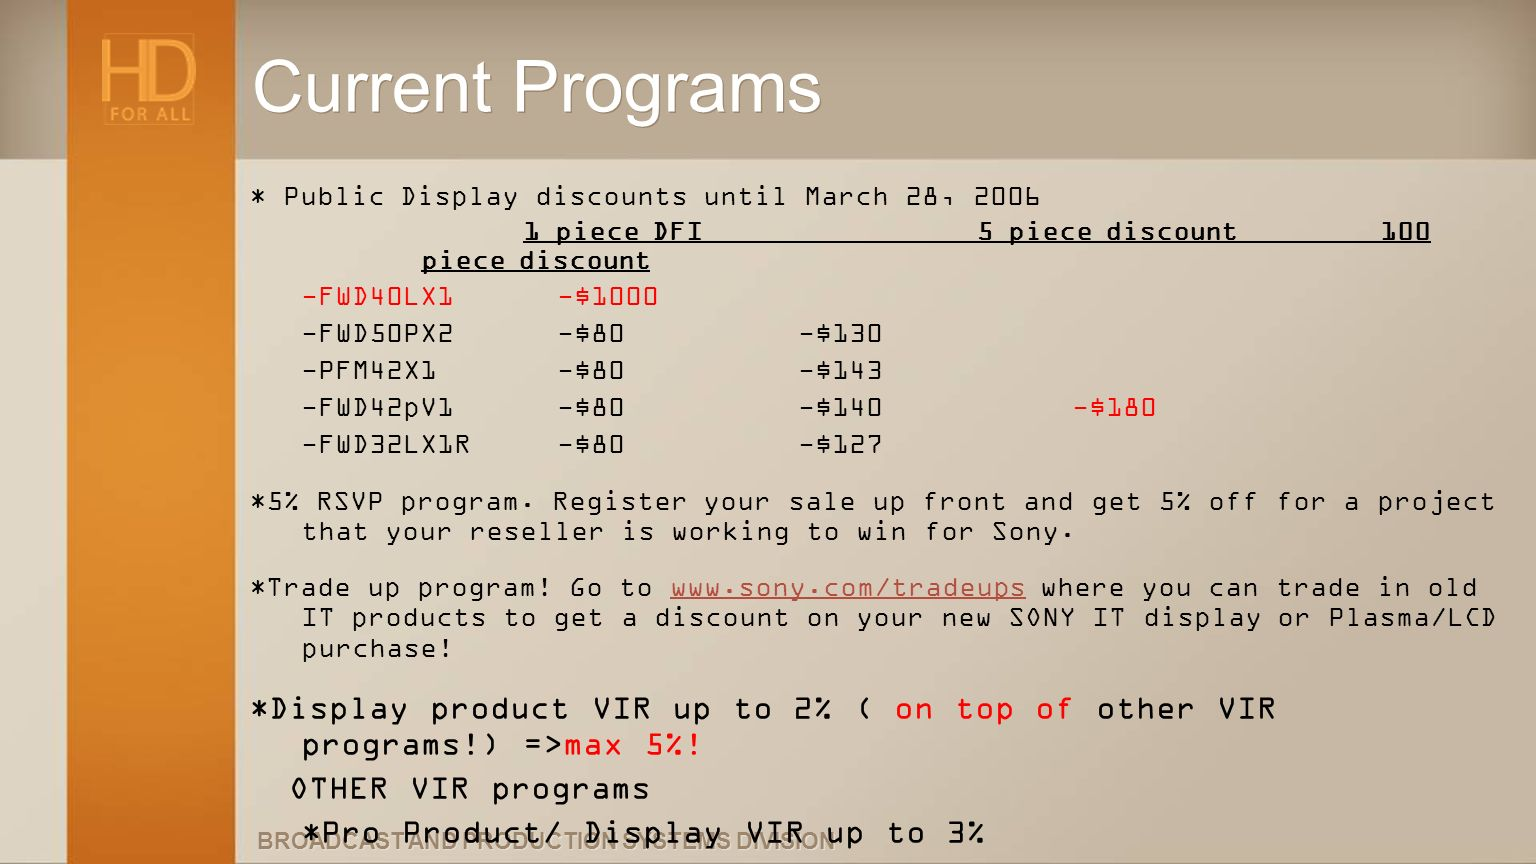 Current Programs * Public Display discounts until March 28, 2006. 1 piece DFI 5 piece discount 100 piece discount.